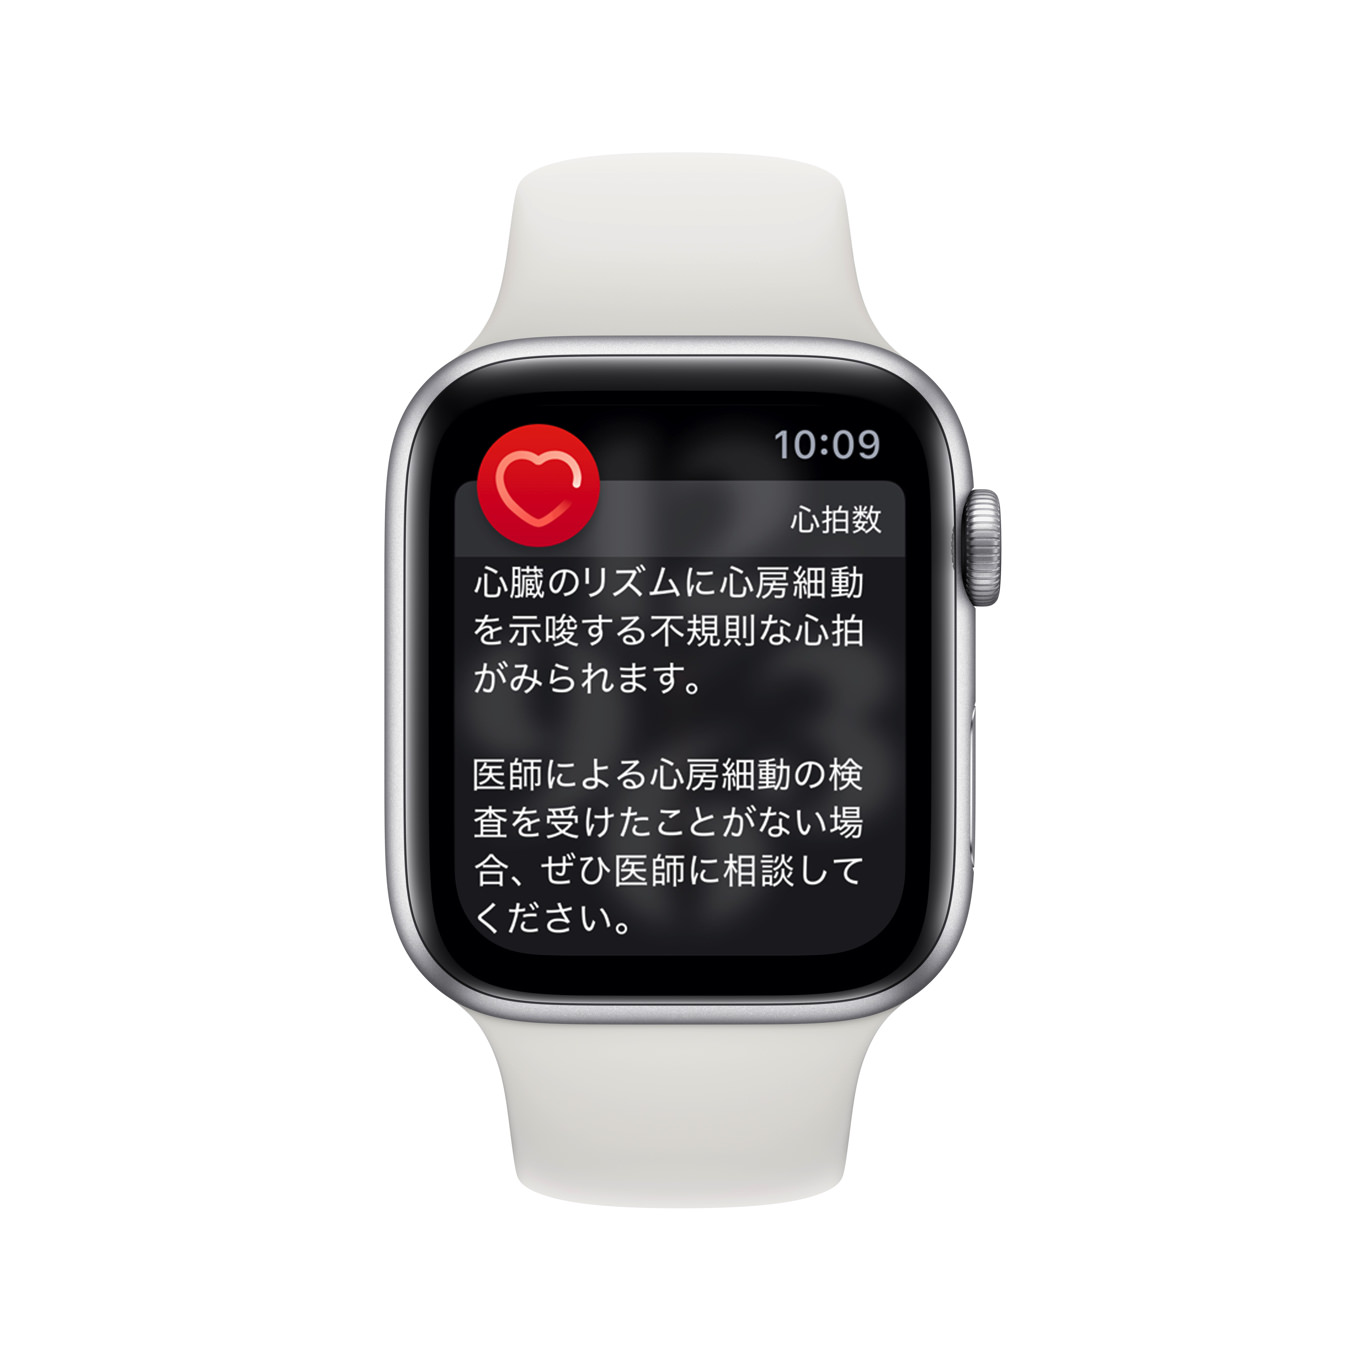 Apple_watch-alerts-heartrate-atrialfibrillation-longlook